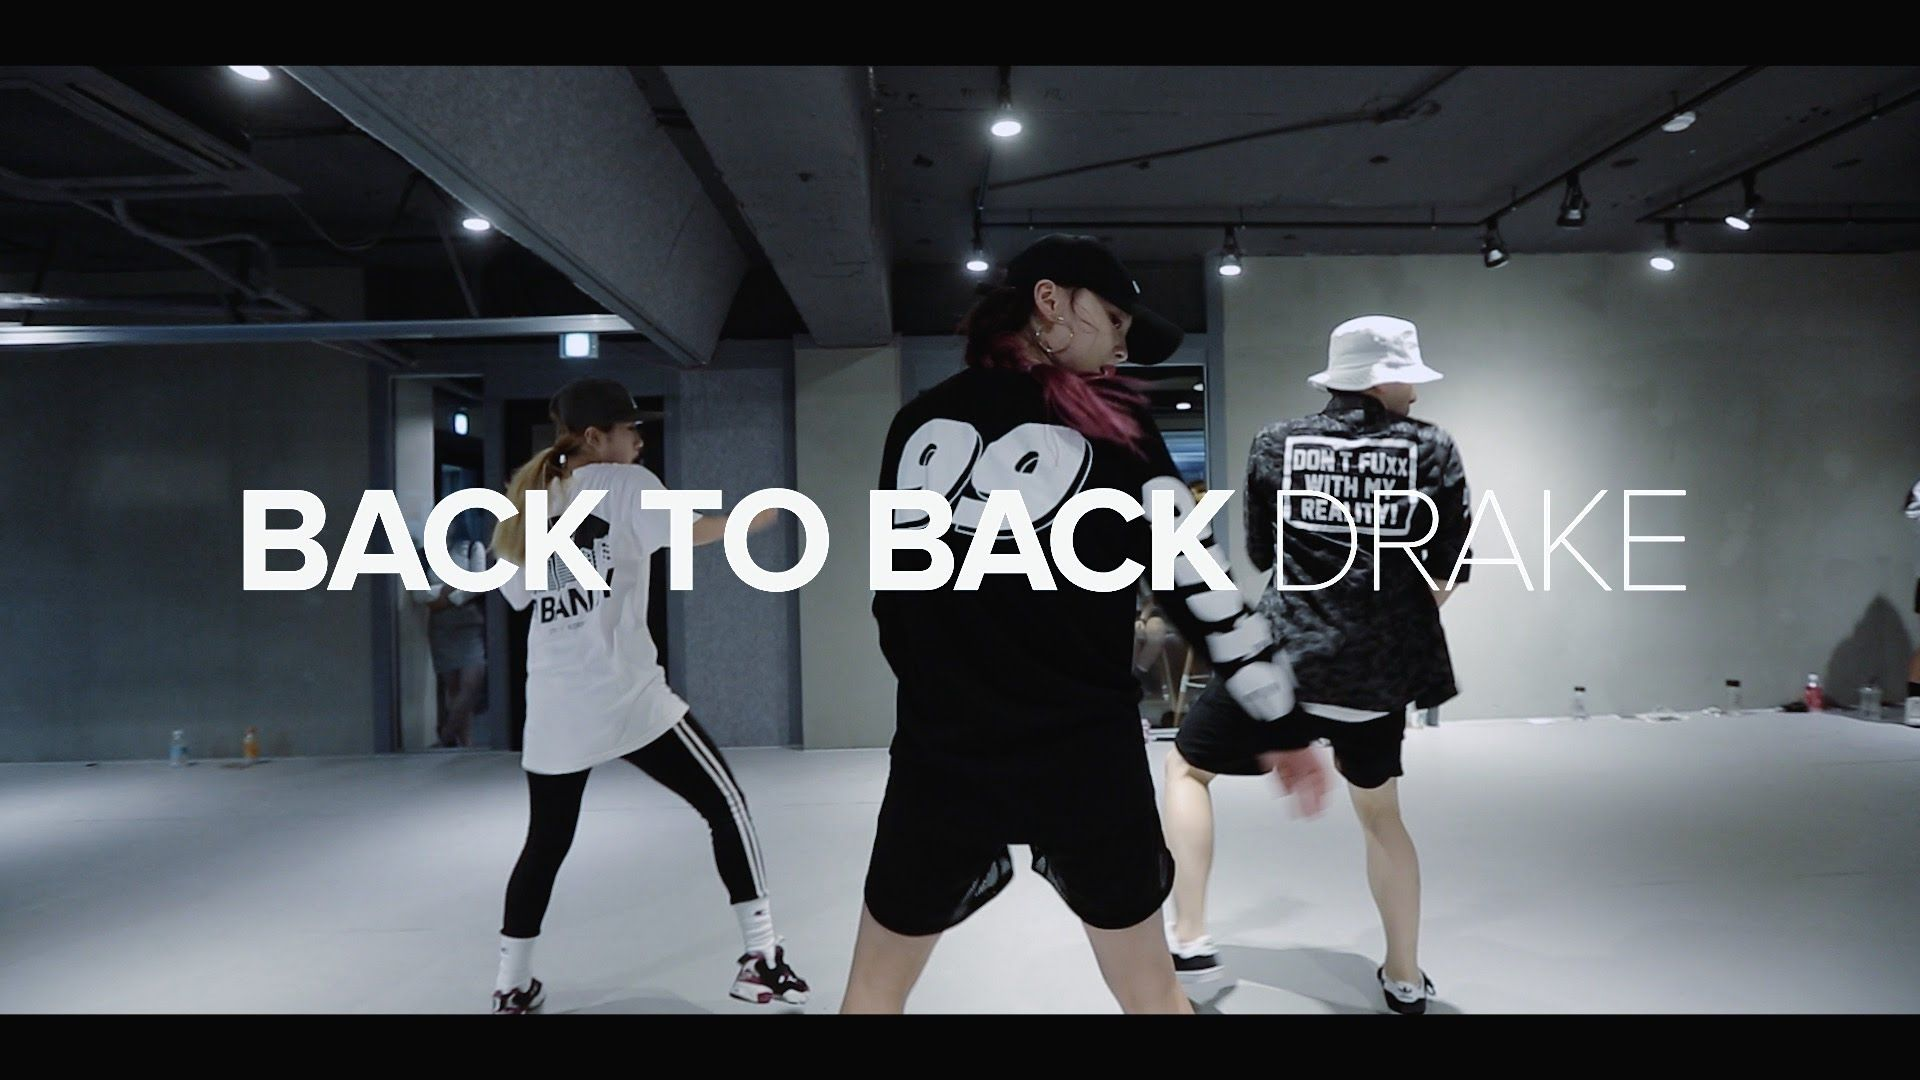 Sori Na Teaches Choreography To Back To Back By Drake Learn From